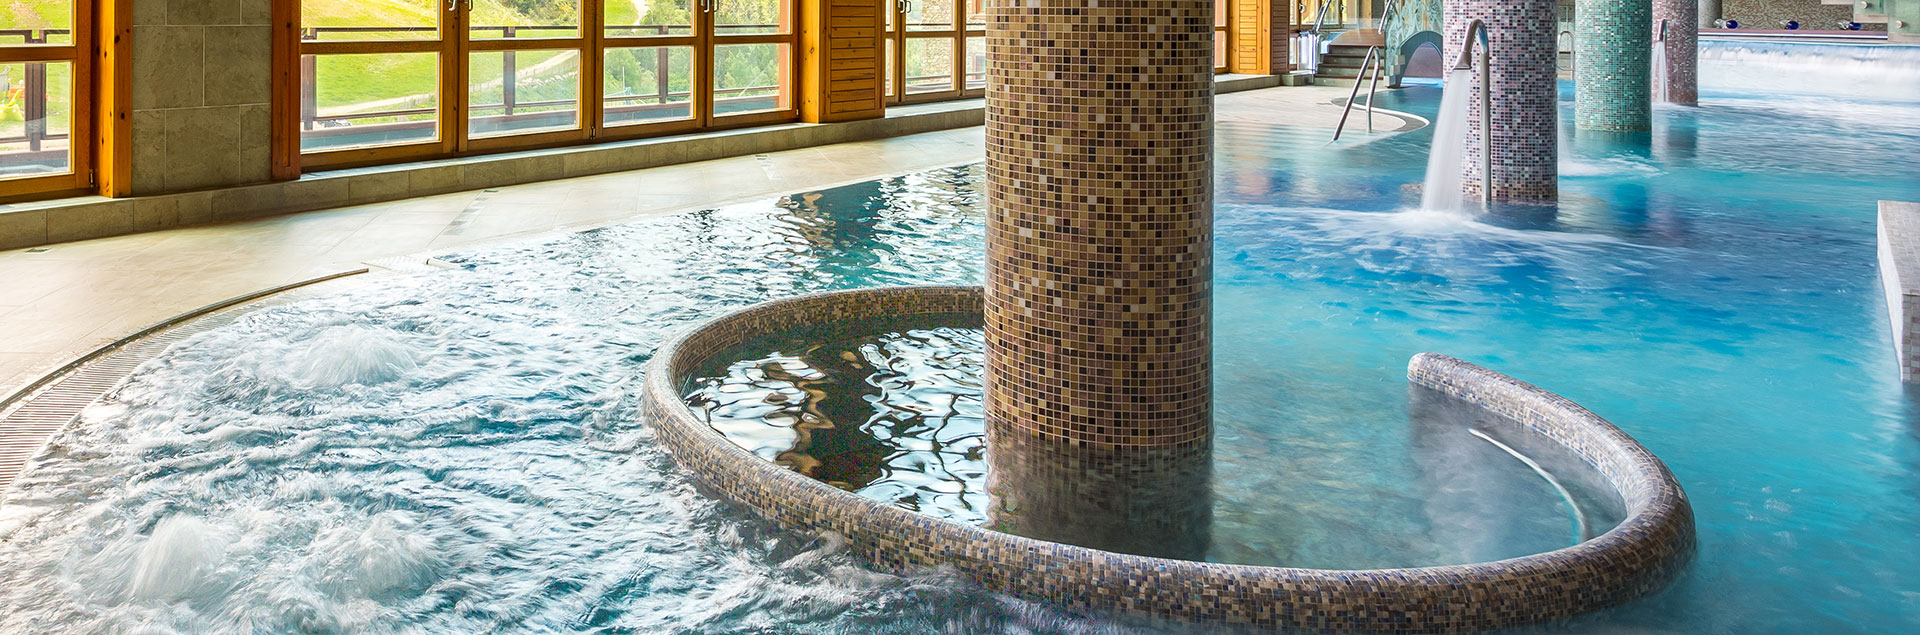 differents temperatures pool luxury spa and hotel andorra